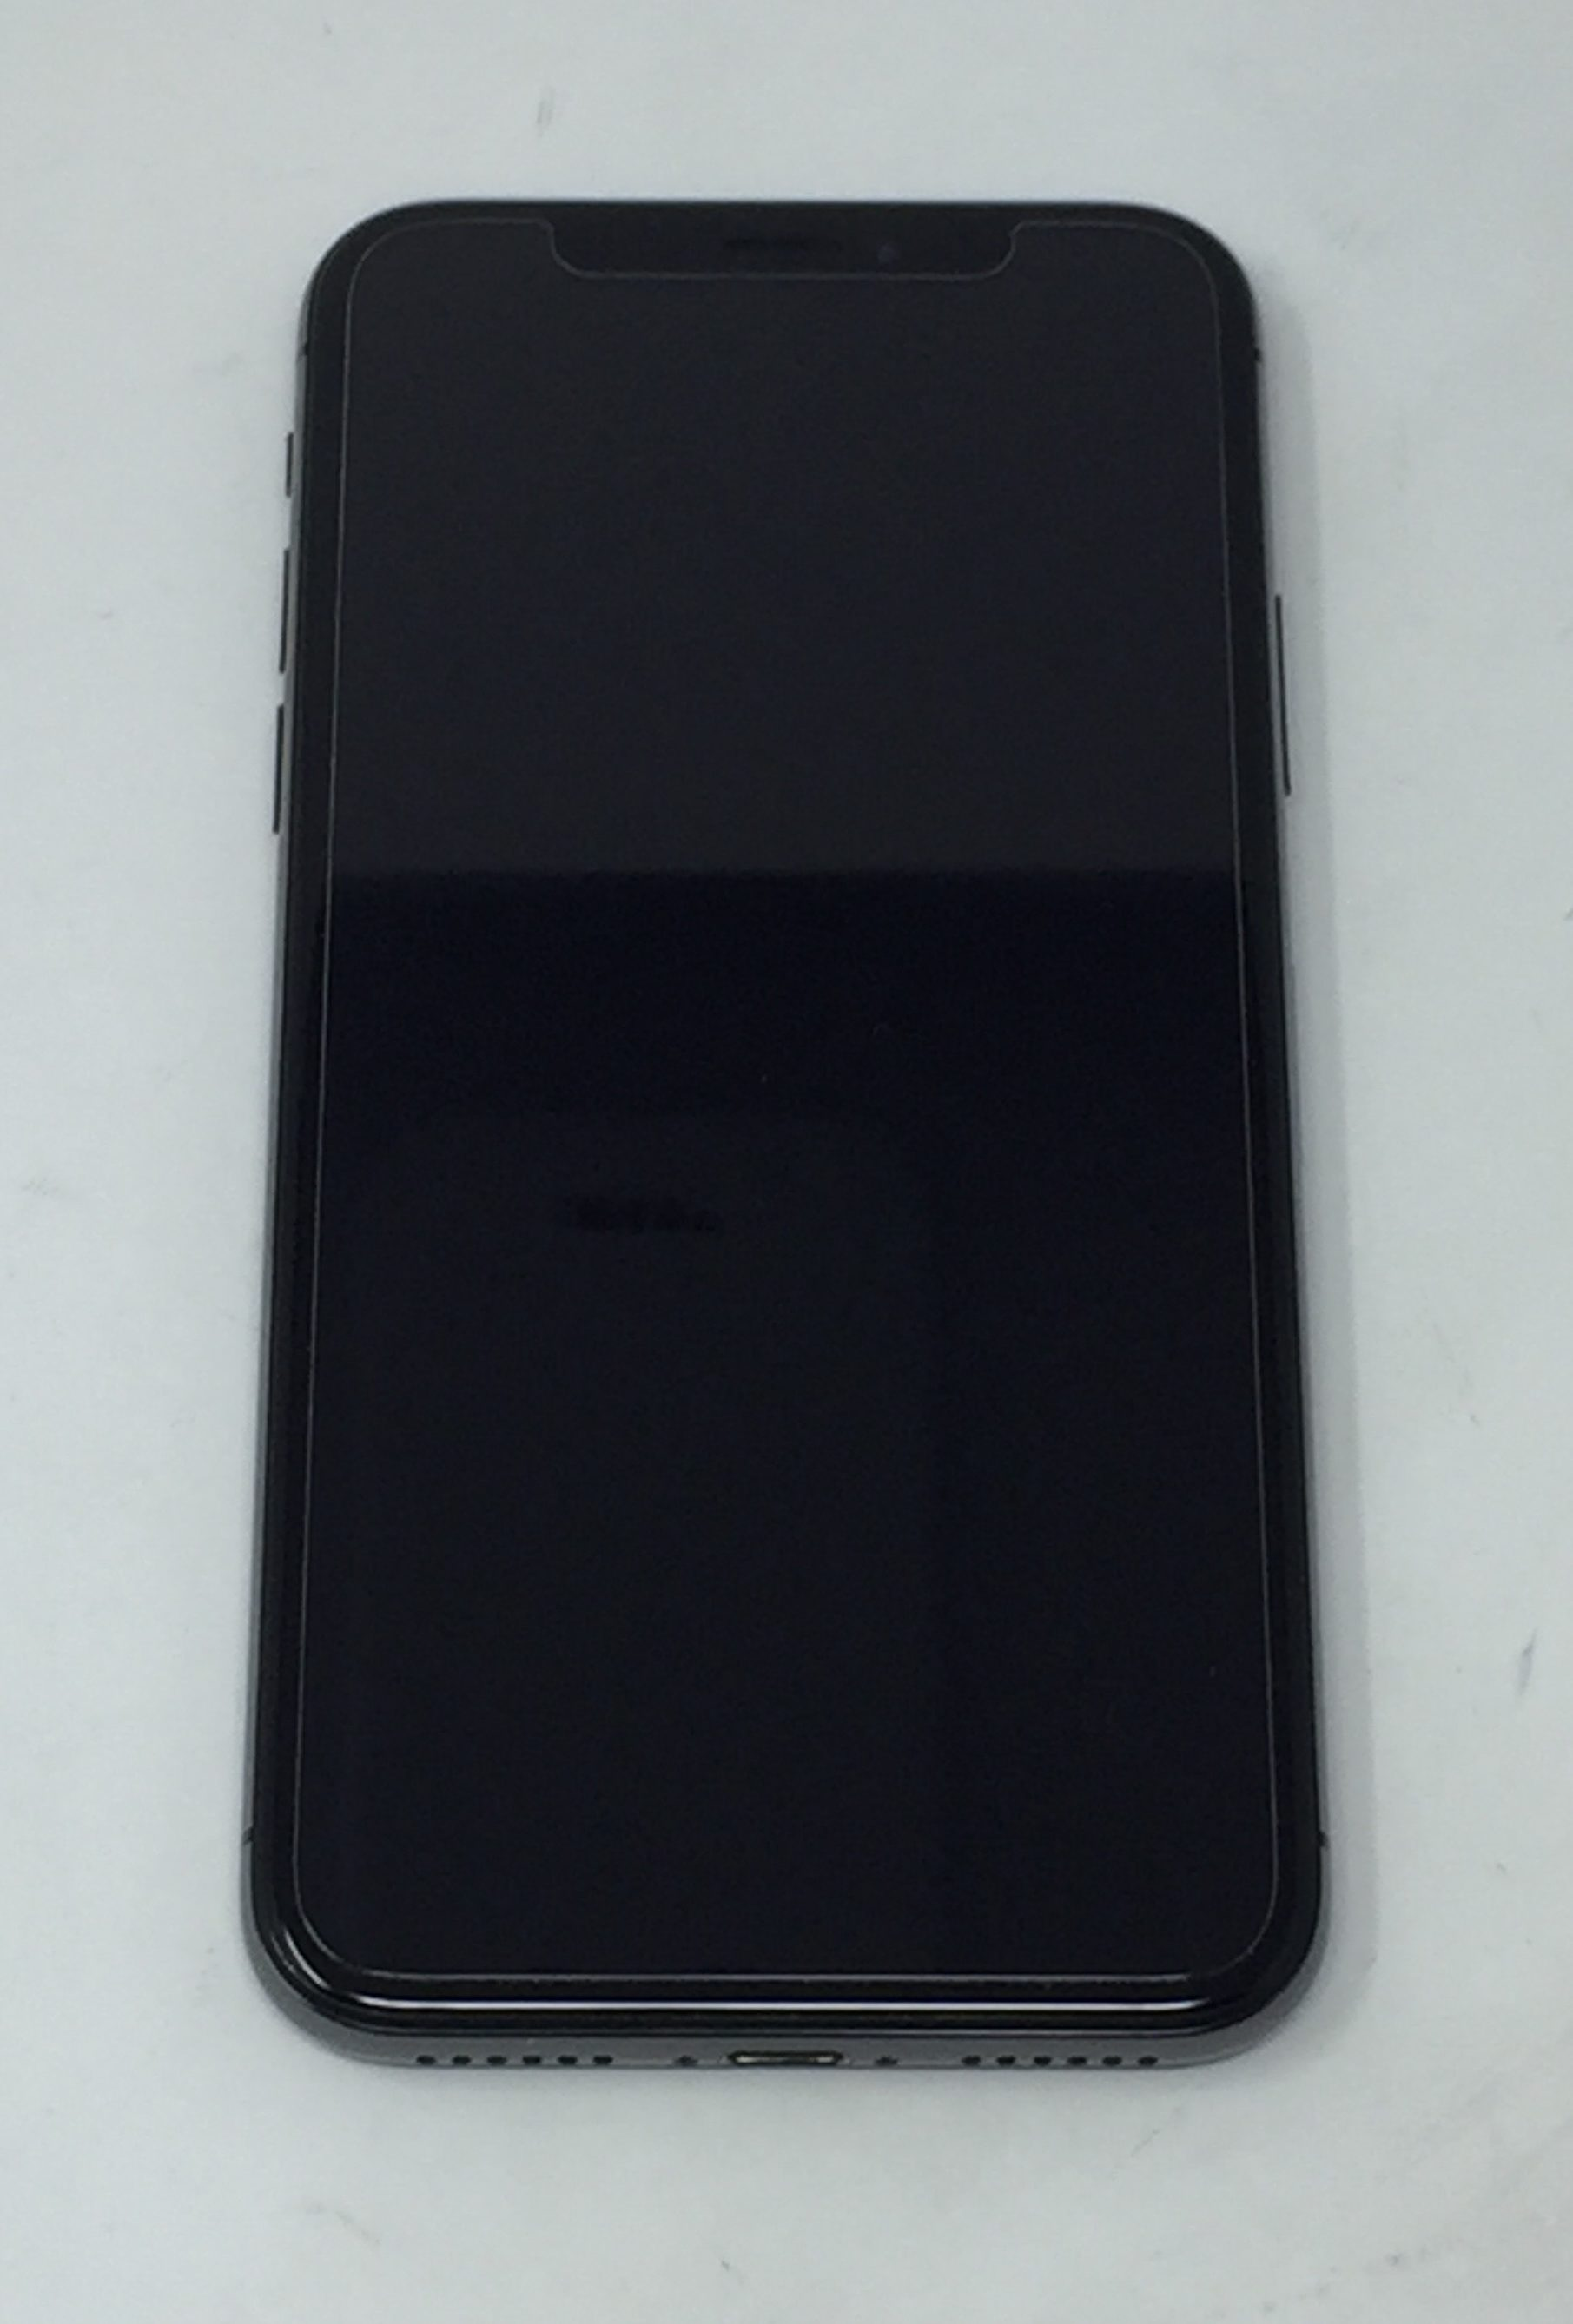 iPhone X 256GB, 256 GB, SPACE GRAY, imagen 1